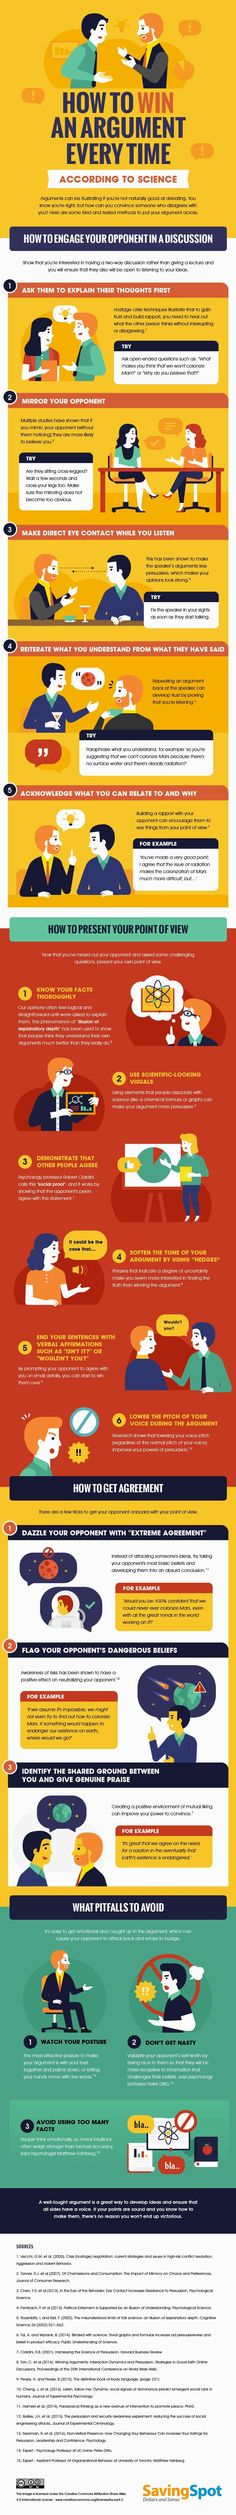 How to Win an Argument - According to Science #infographic